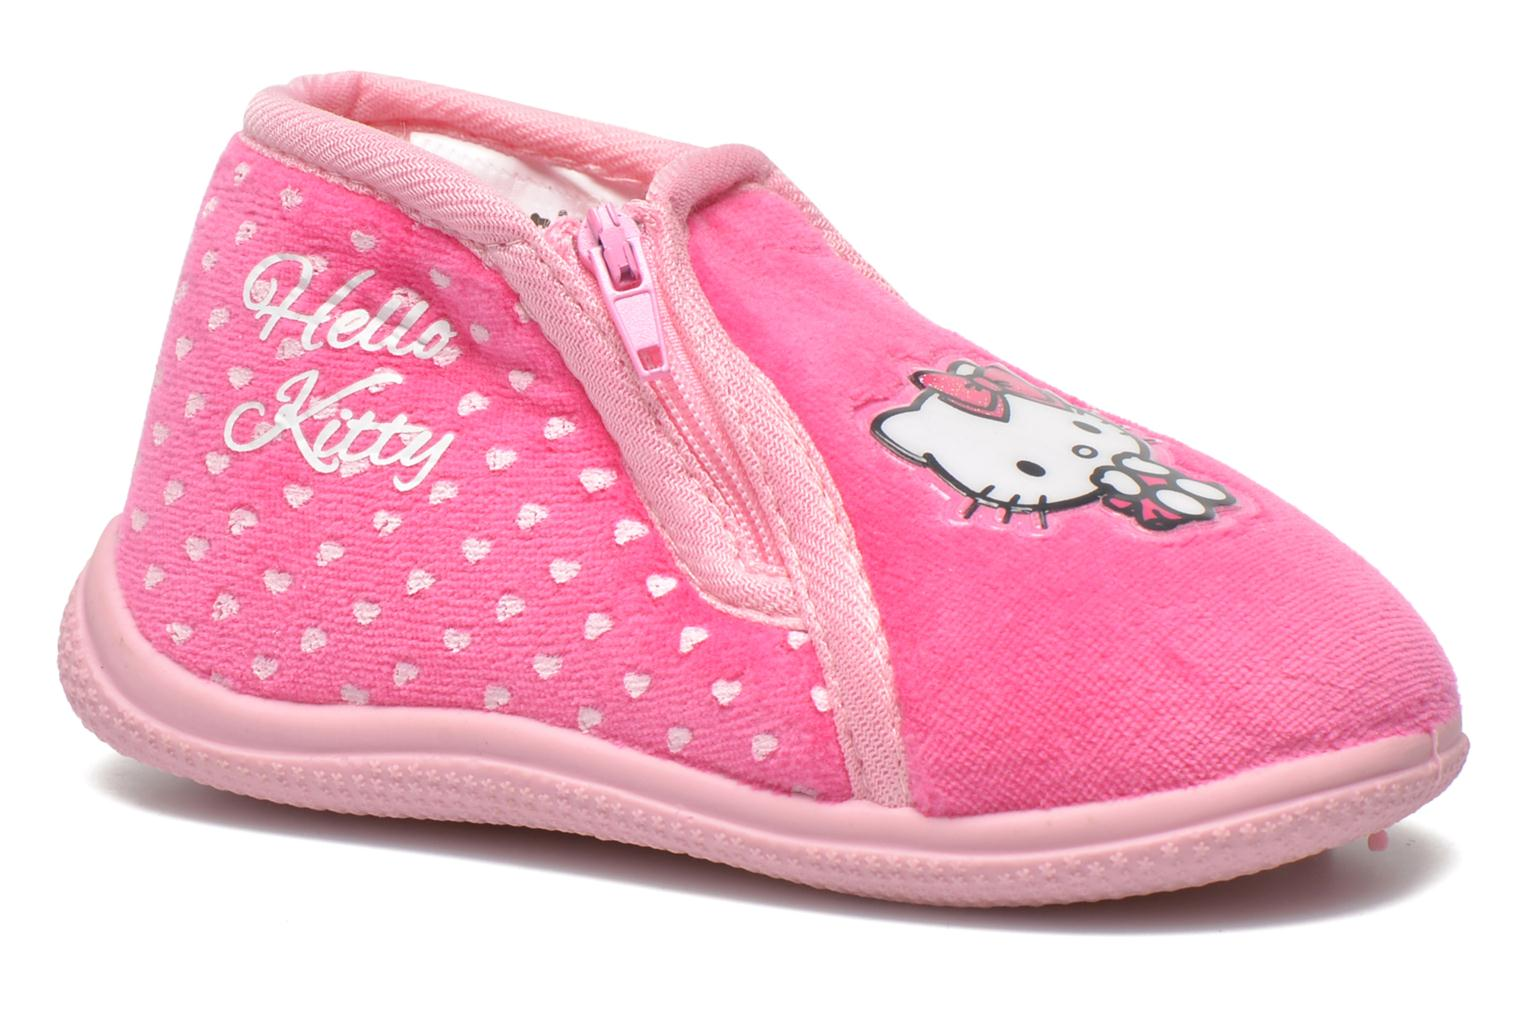 Pantoffels Hello Kitty Hk Reste Roze detail